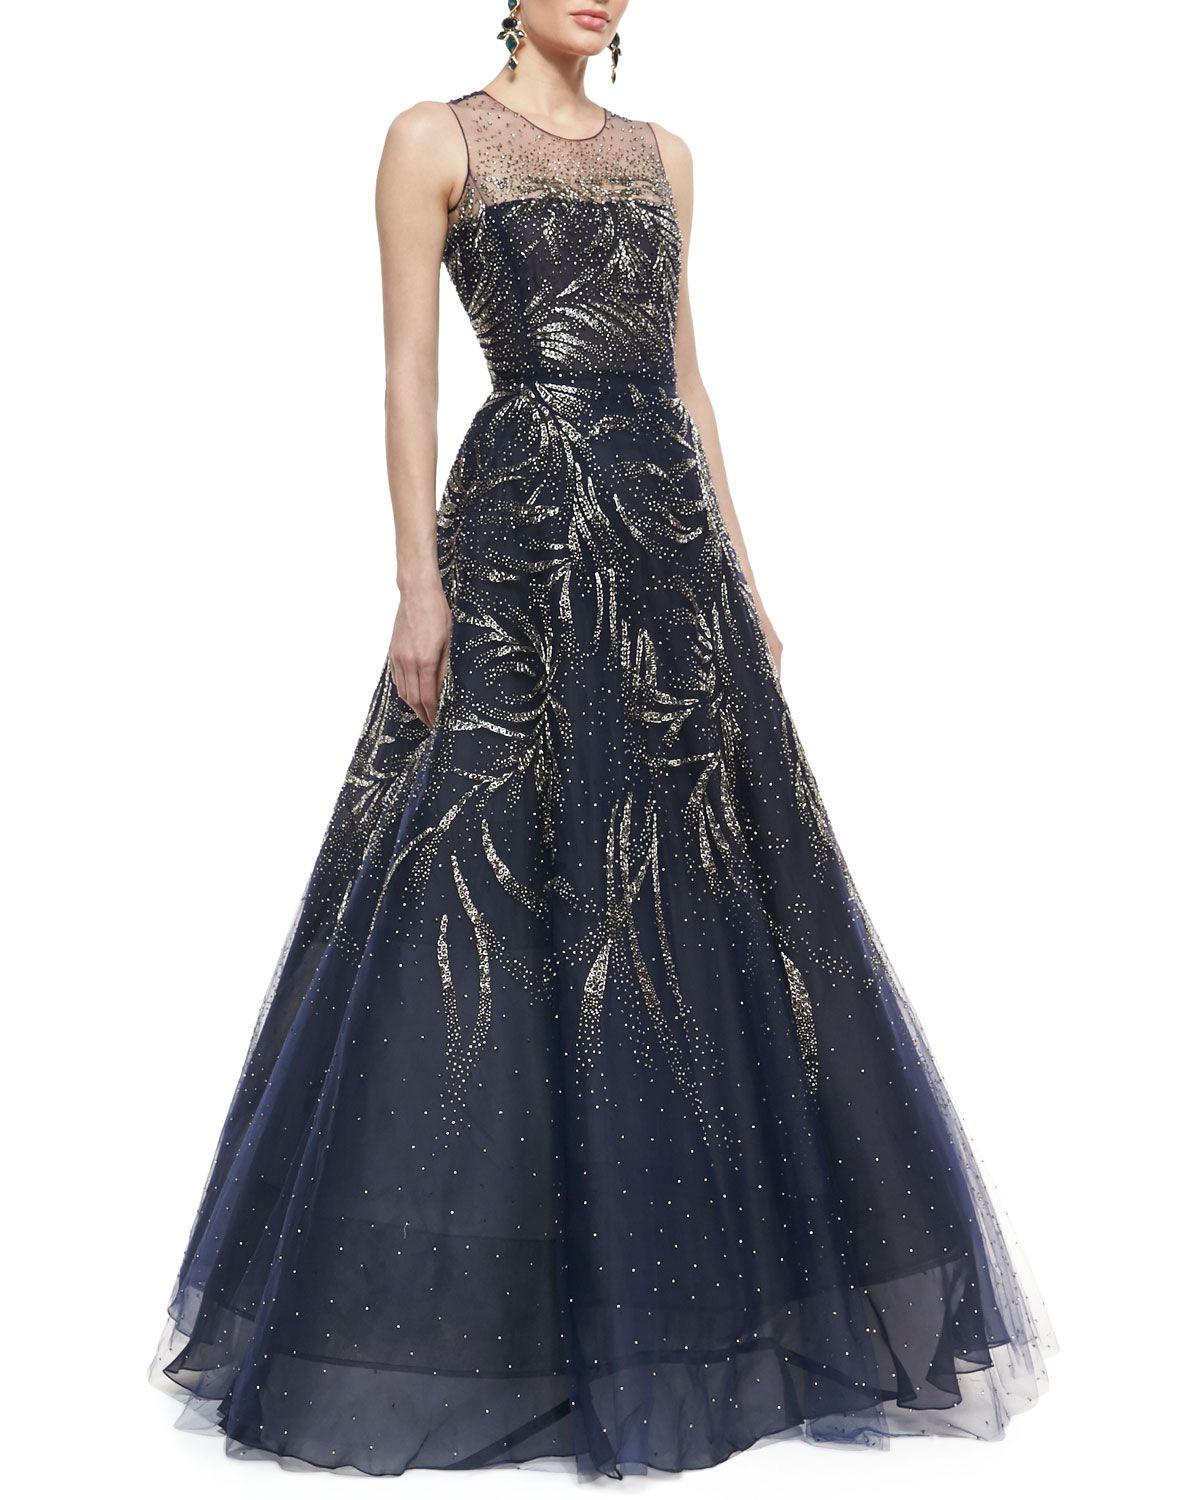 Oscar De La Renta Sleeveless Embellished Ball Gown Classy